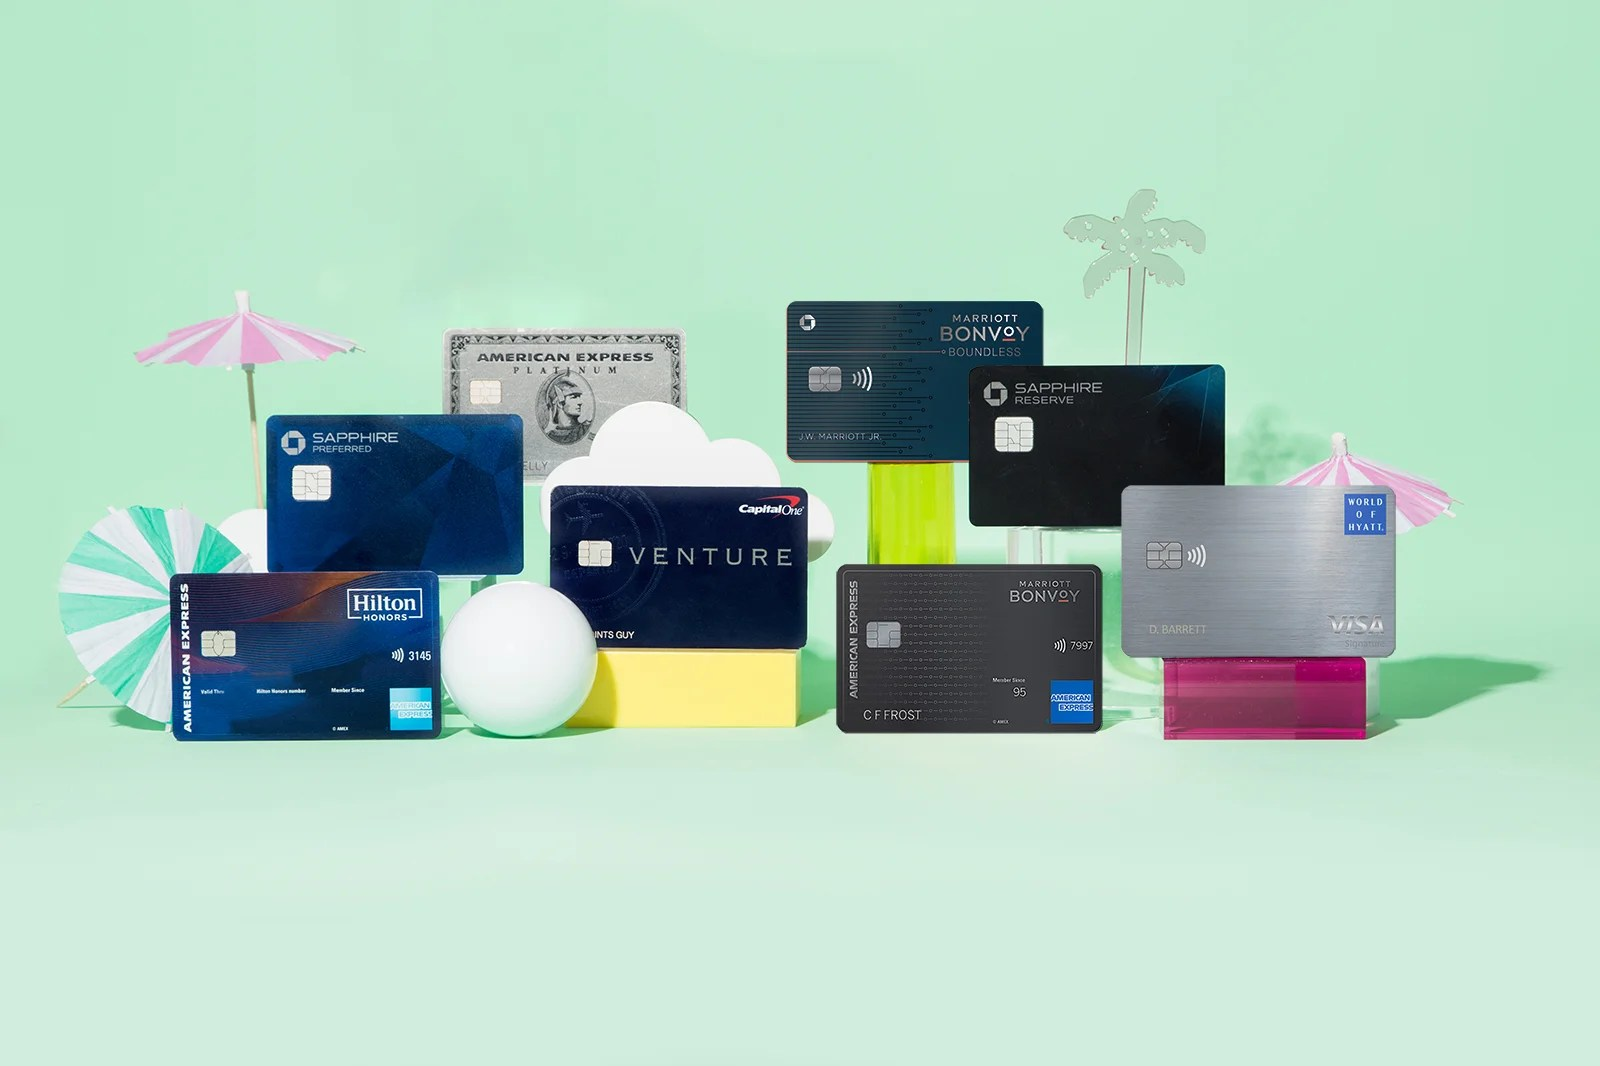 The best travel credit cards for 2020